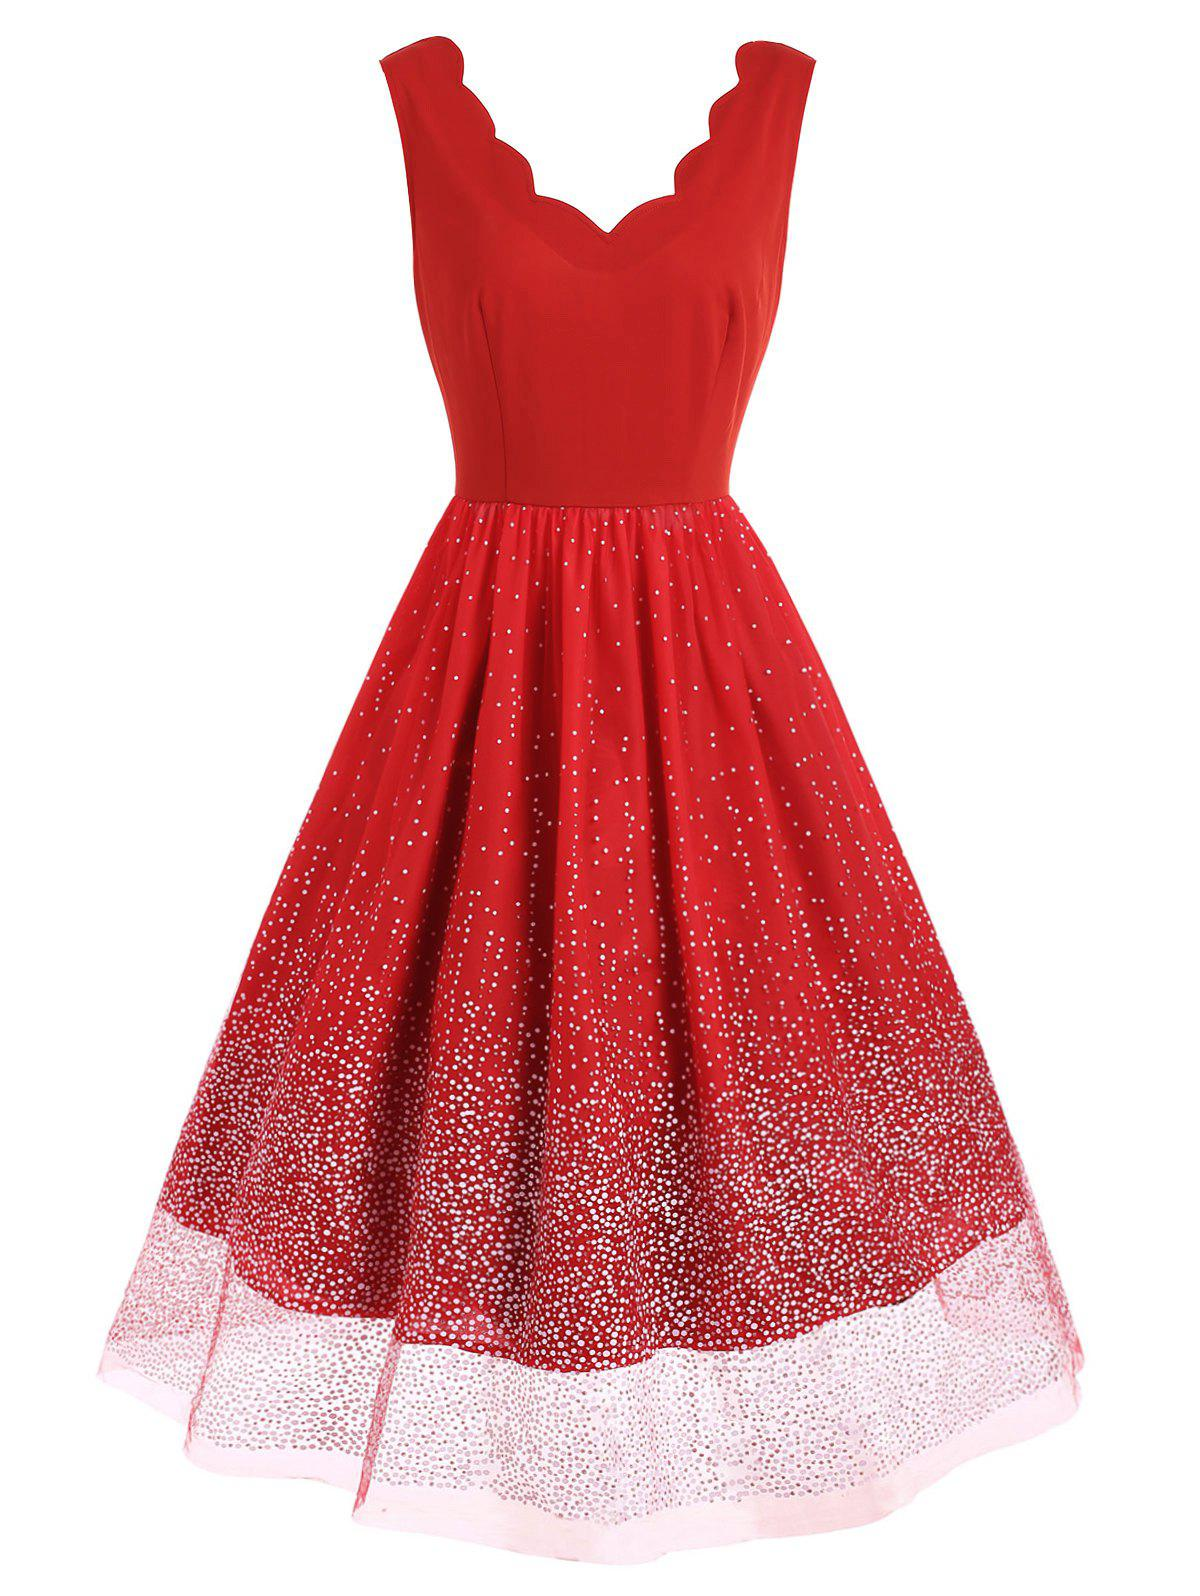 Affordable Scalloped Snow Pattern Sleeveless Flare Dress